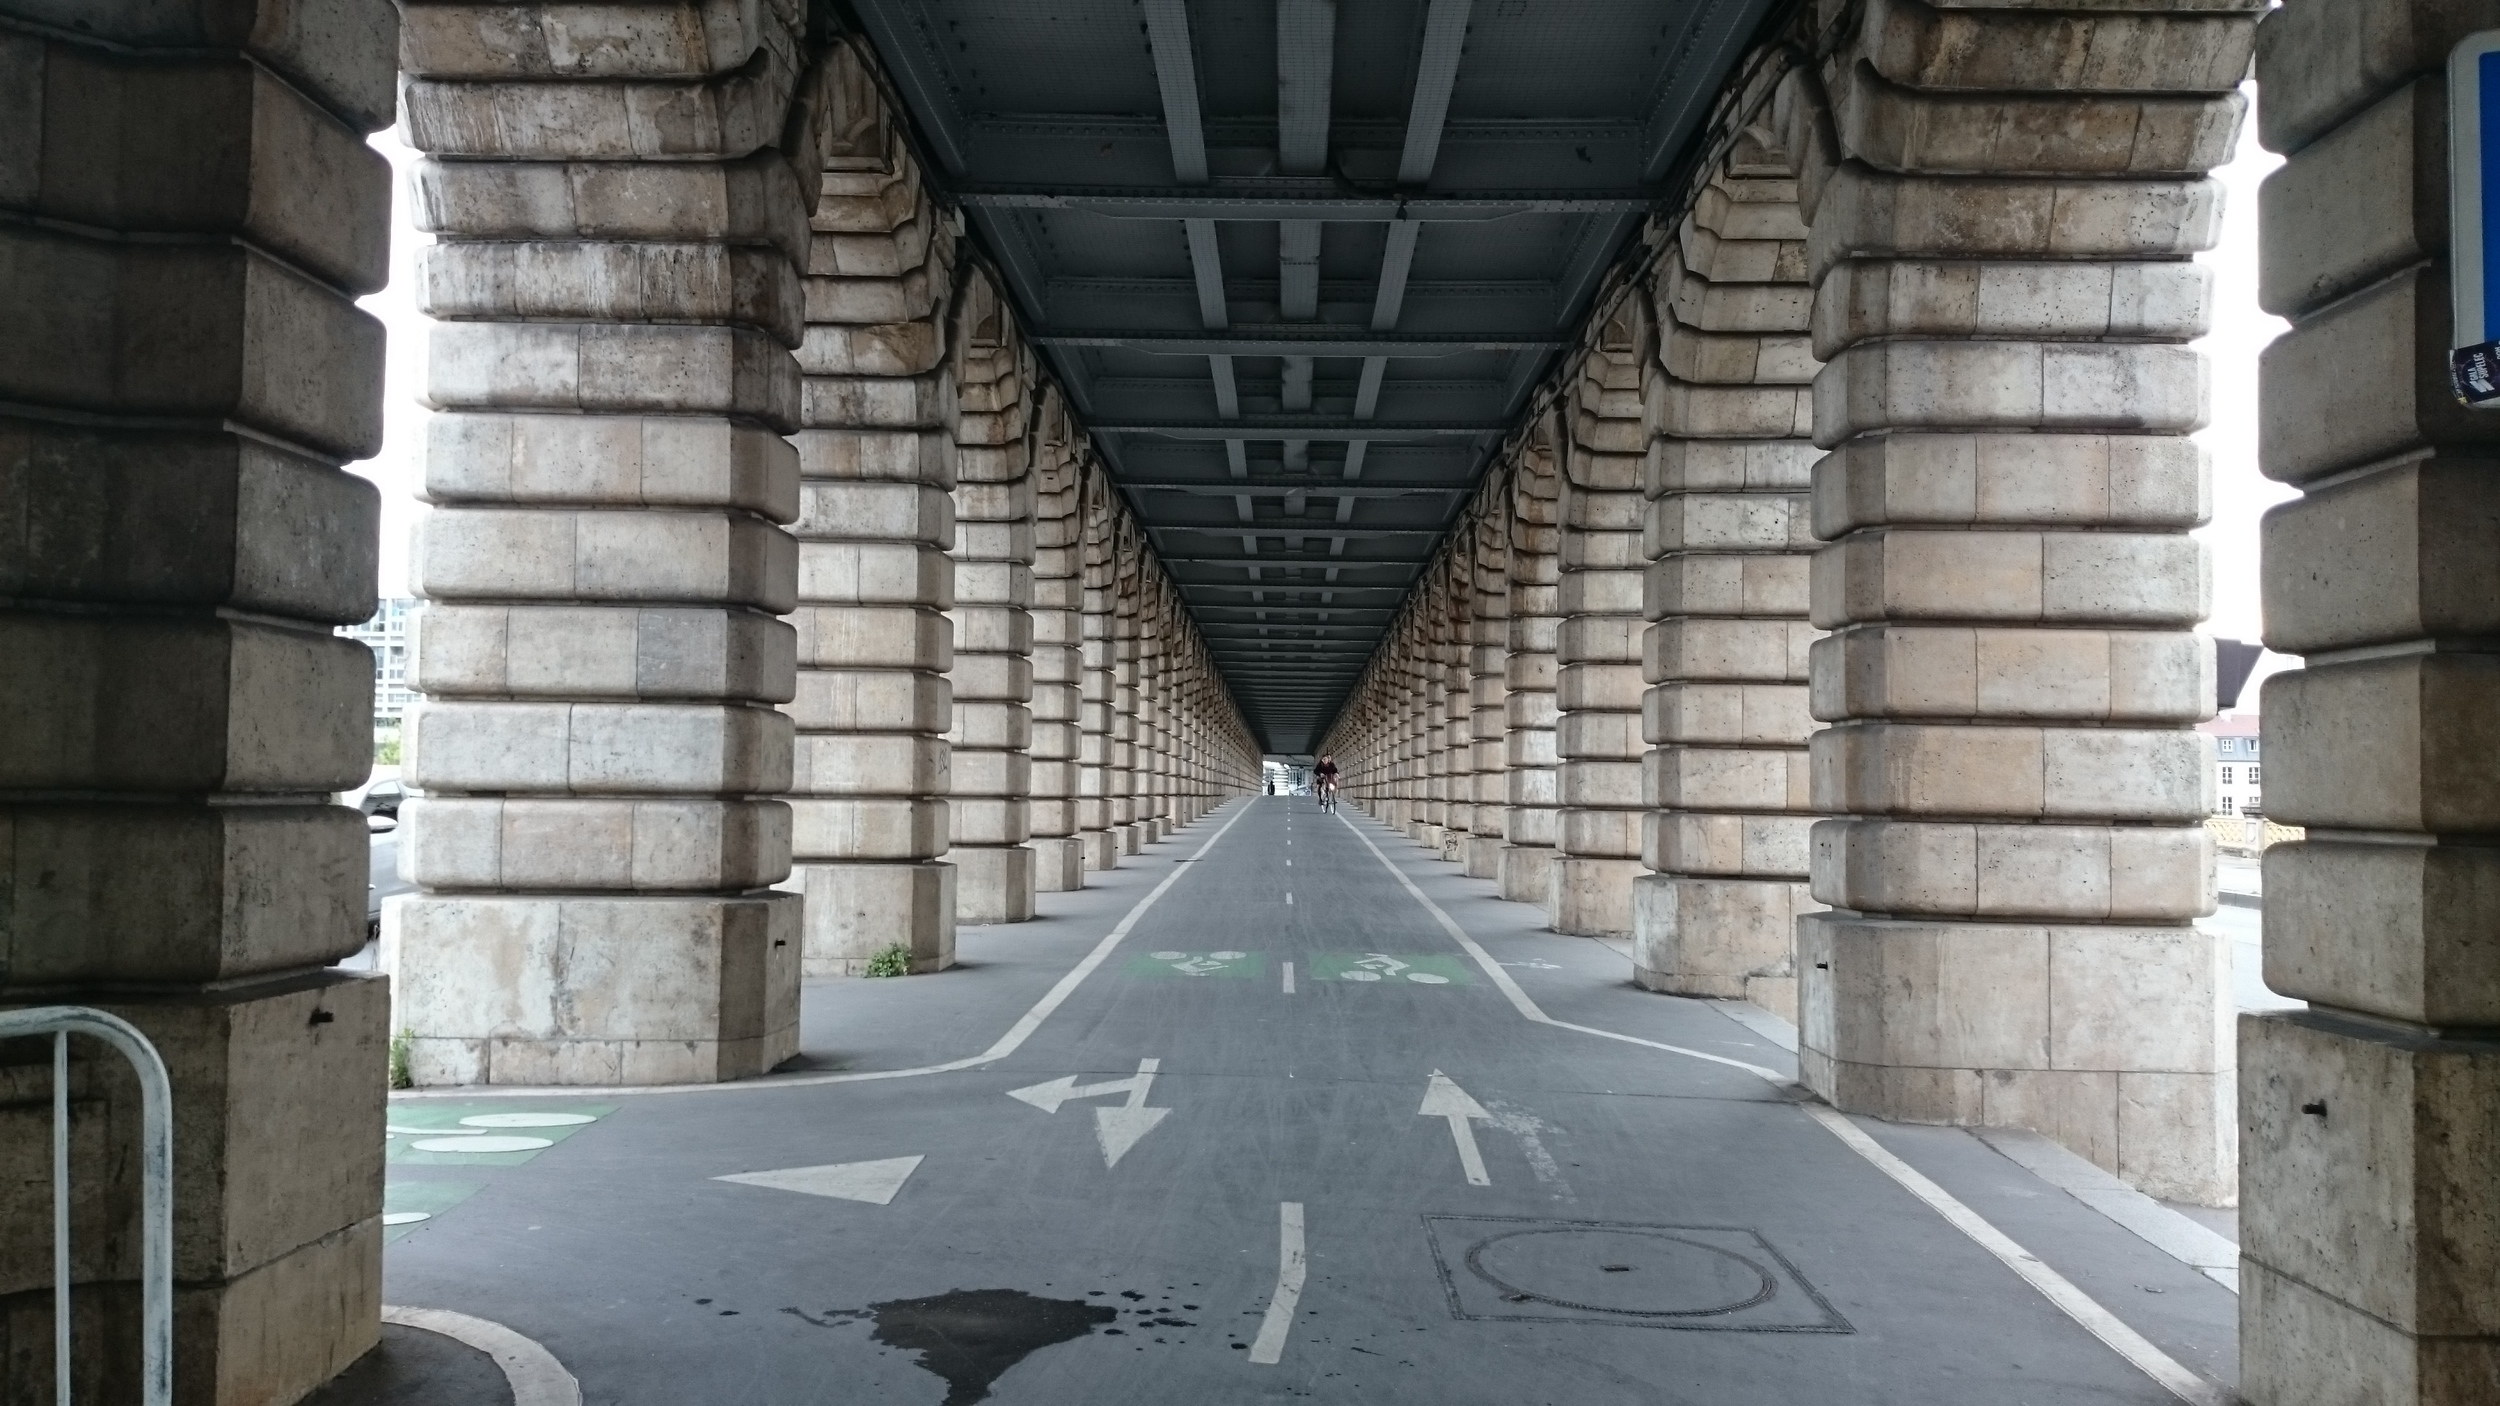 False inception ! not the bridge from inception, but people keep asking me if it is